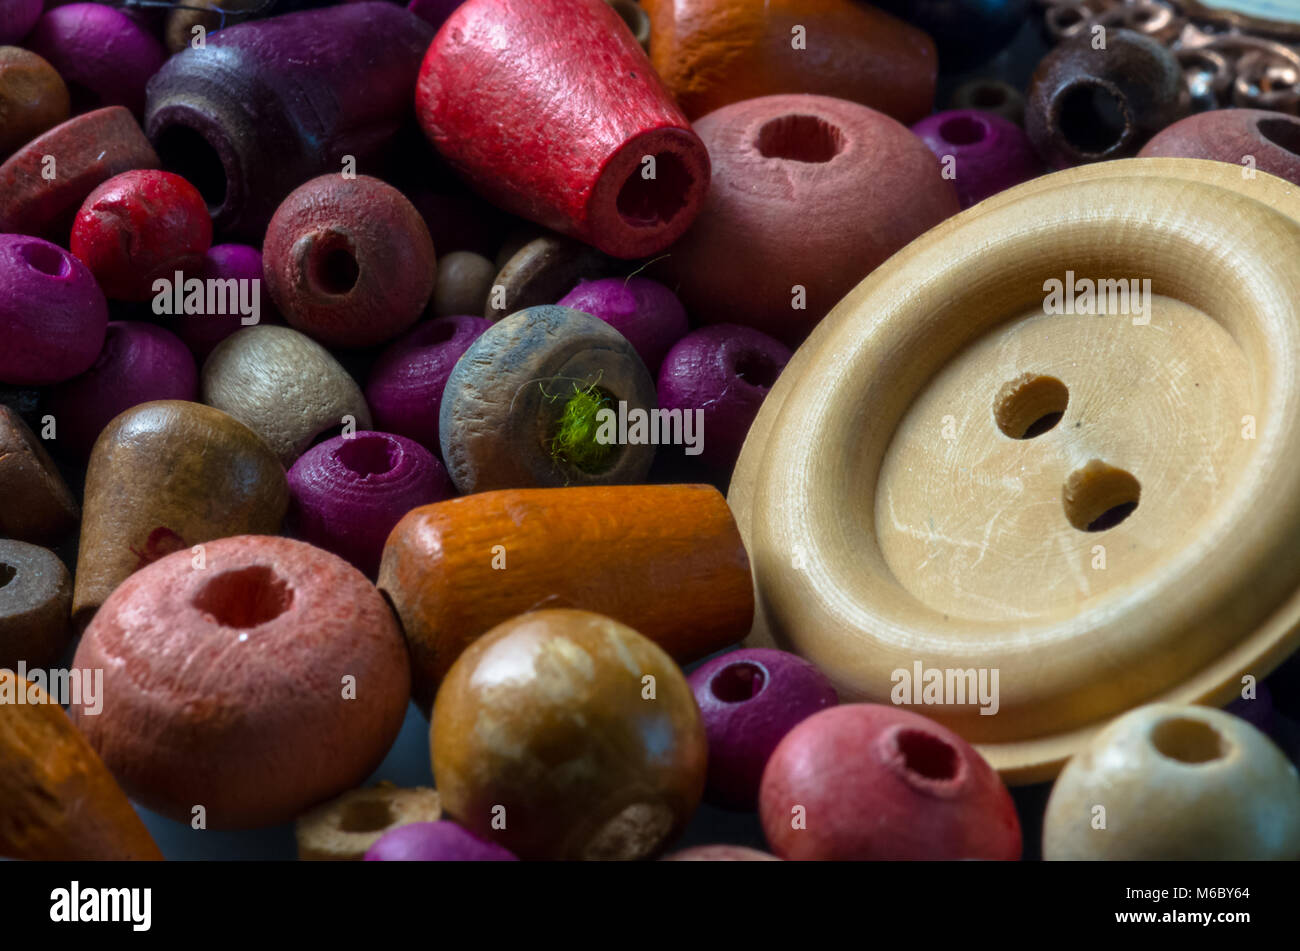 Macro photograph of wooden beads and buttons - Stock Image